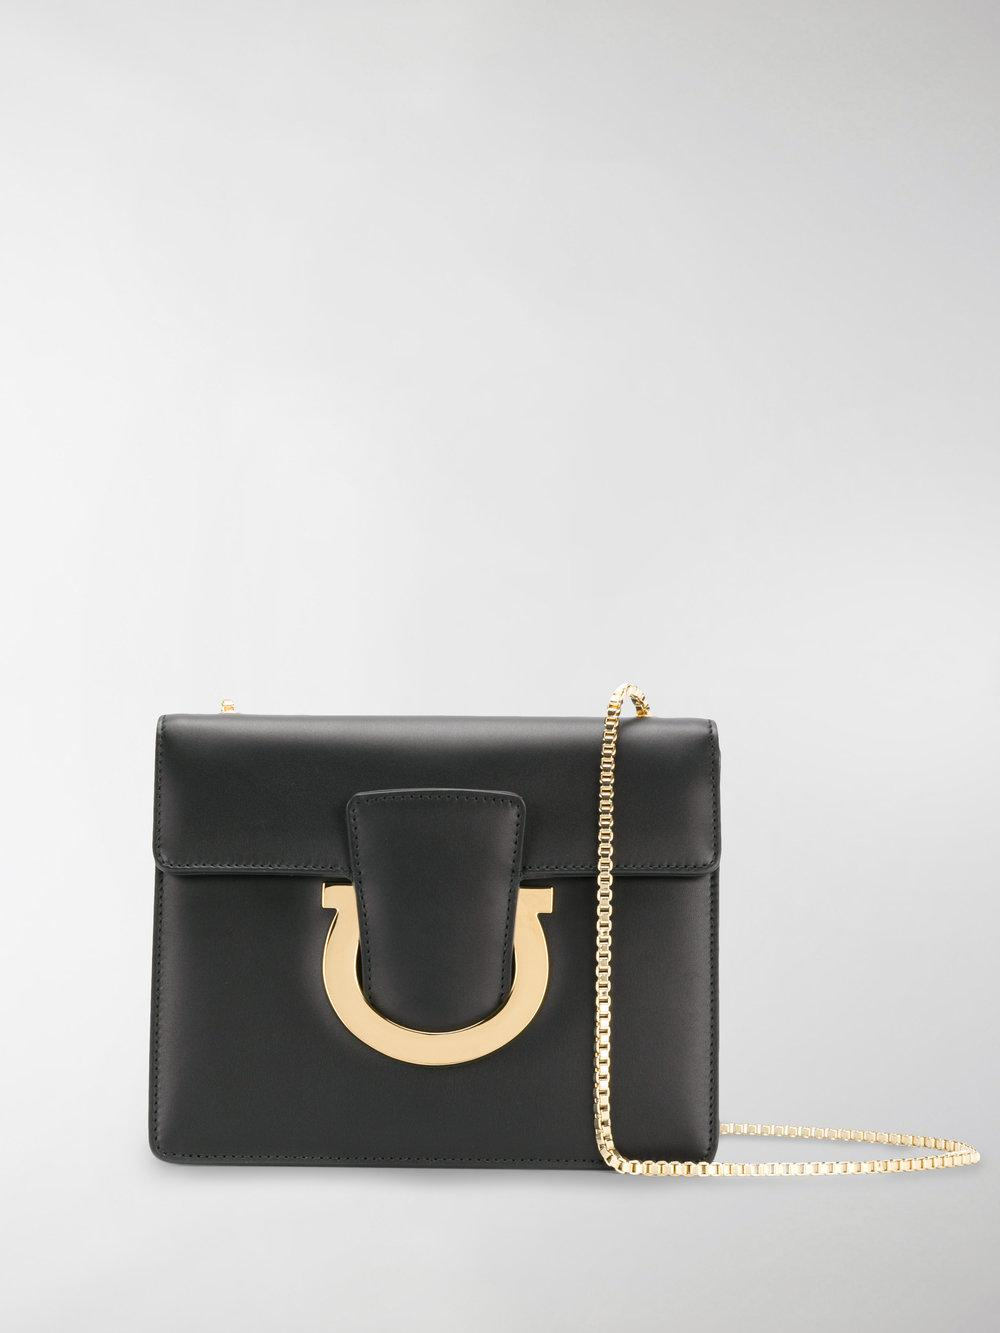 6b589c11fdd9 Lyst - Ferragamo  sabine  Crossbody Bag in Black - Save 15%